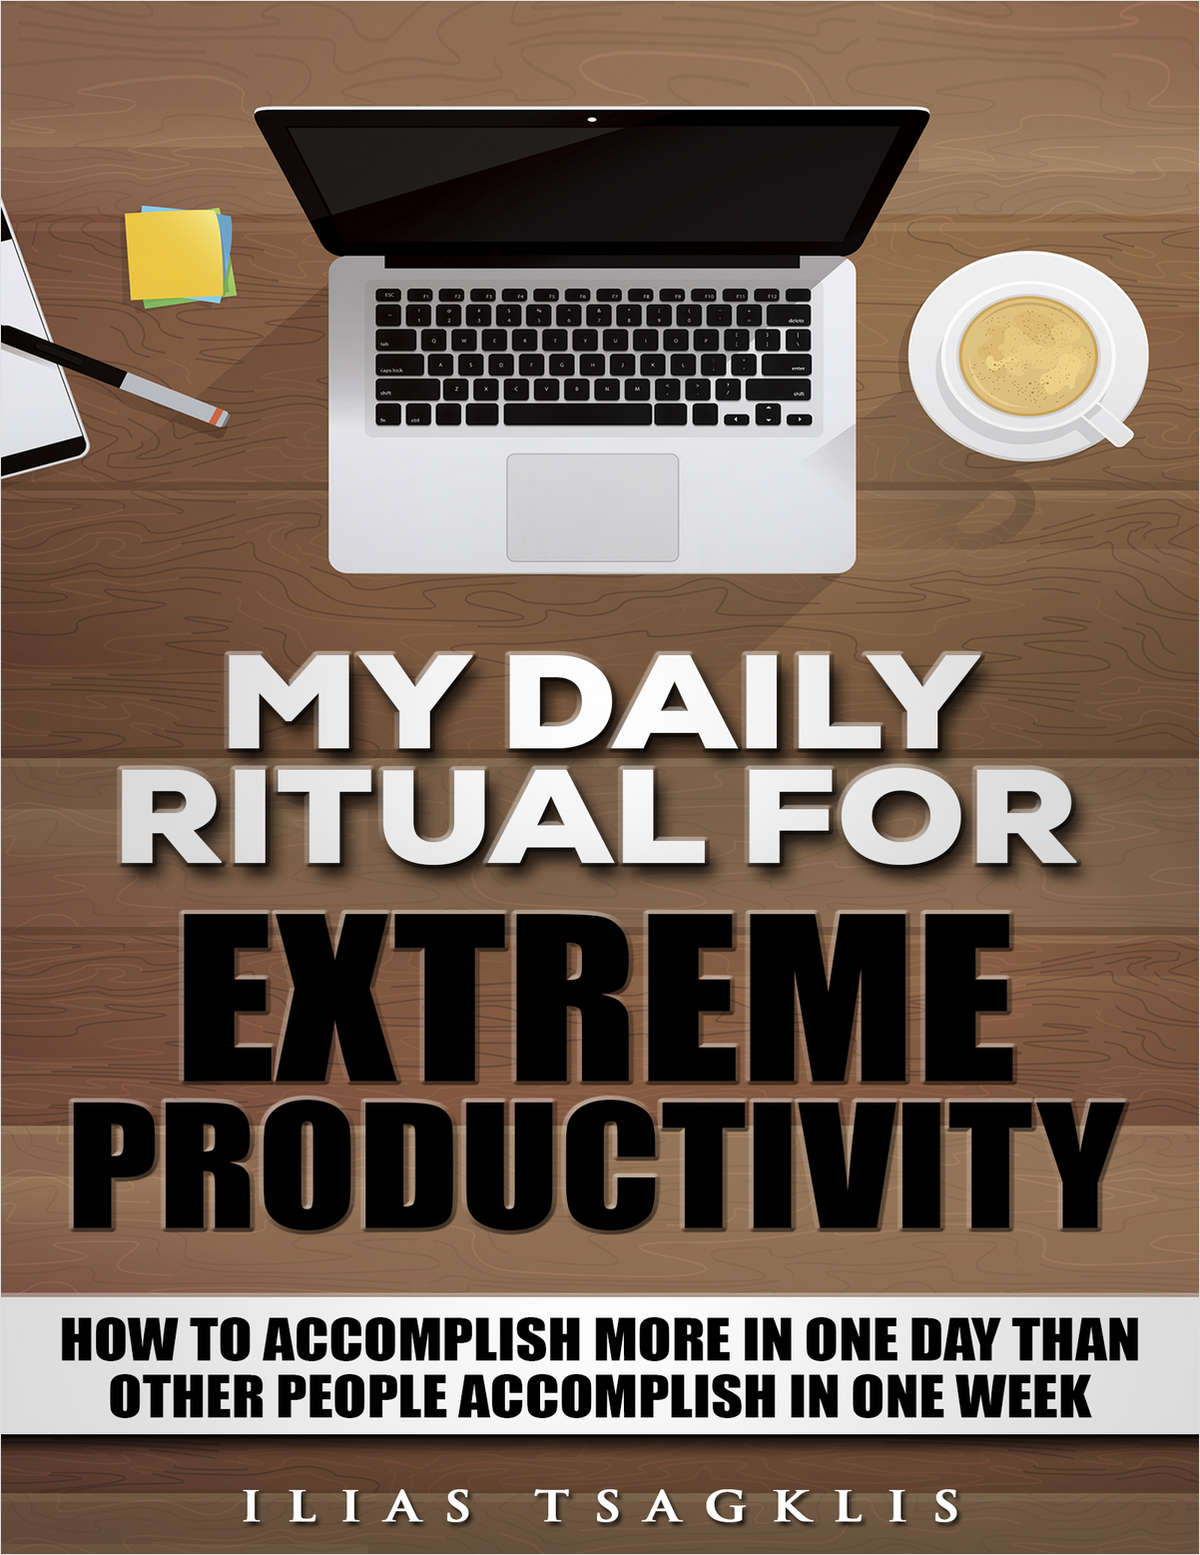 My Daily Ritual for Extreme Productivity